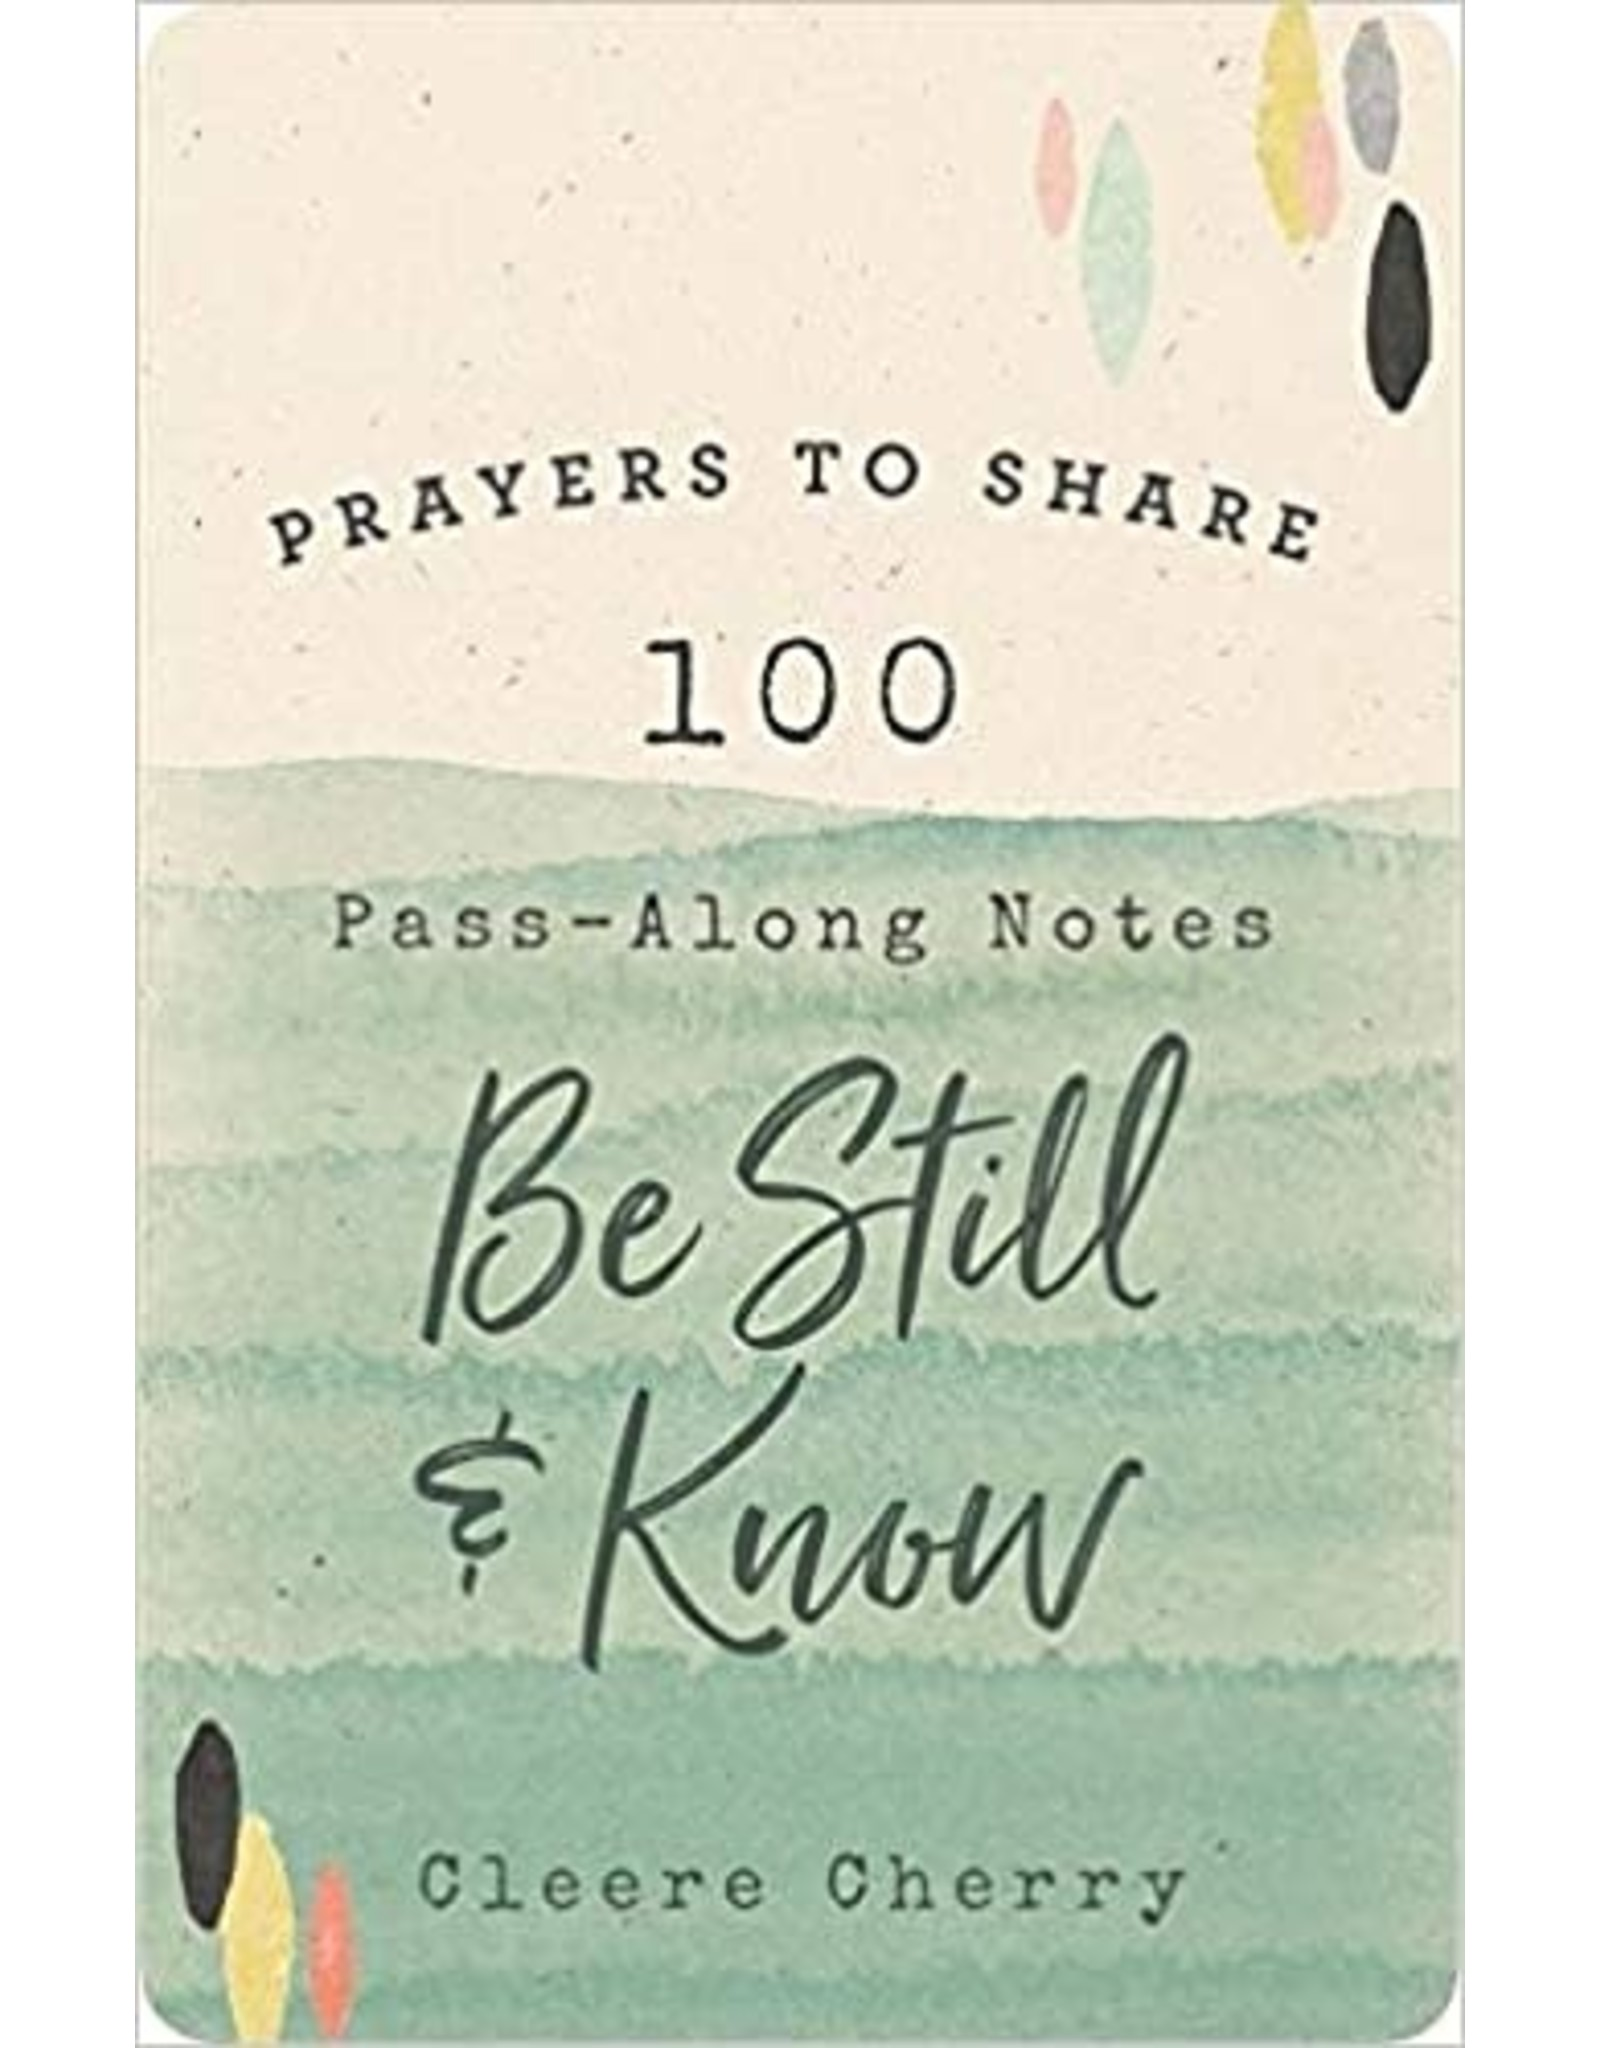 Prayers to Share, Be Still & Know